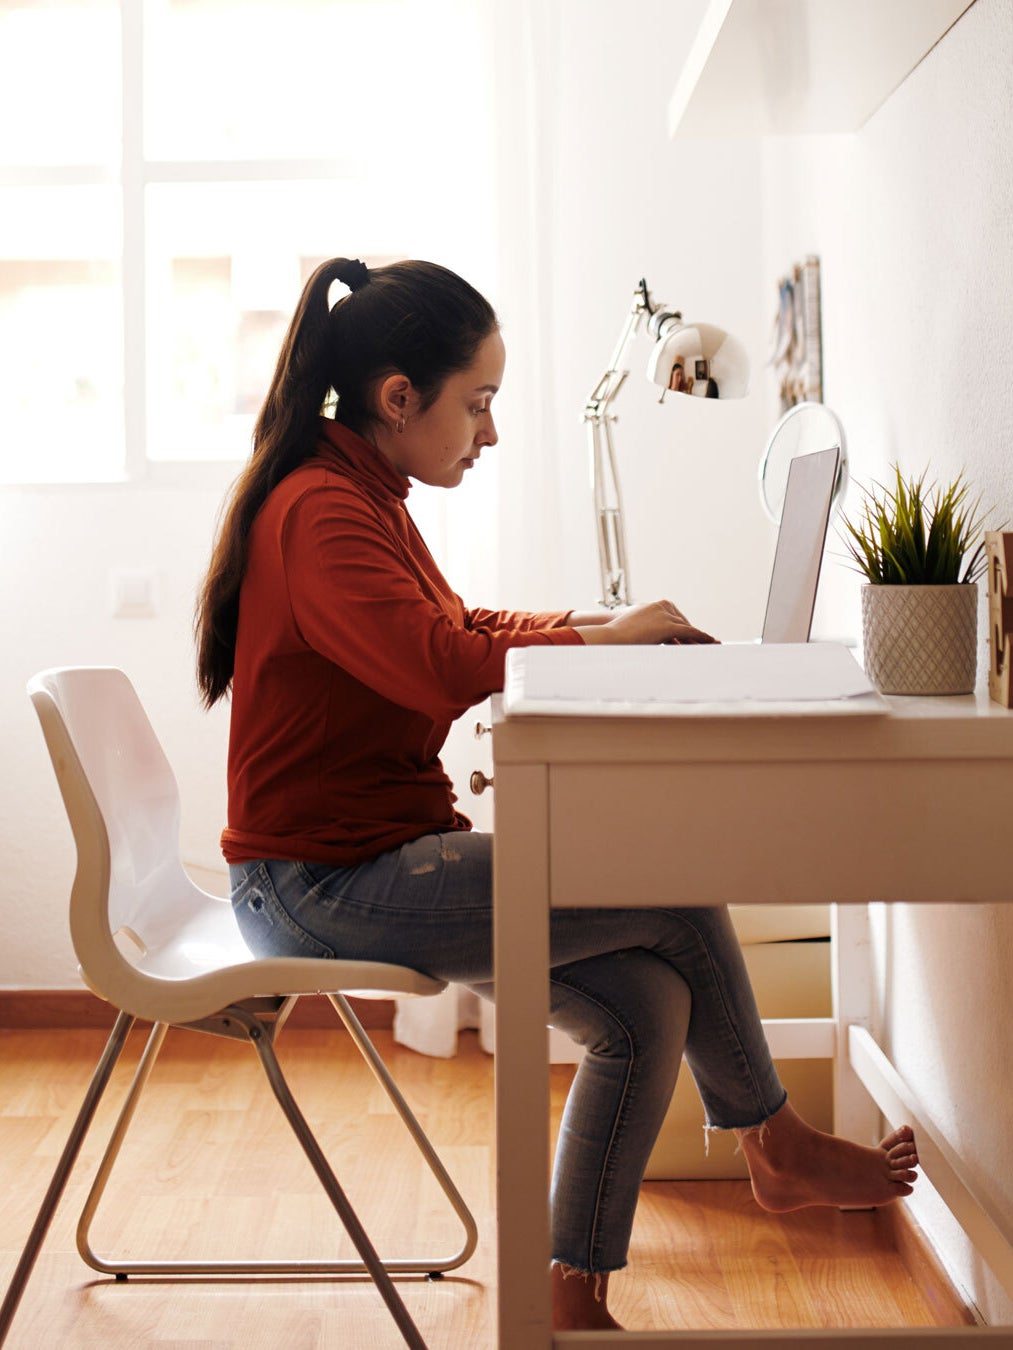 Bookmark These Online Classes for Kids When Stir-Crazy Times Set In